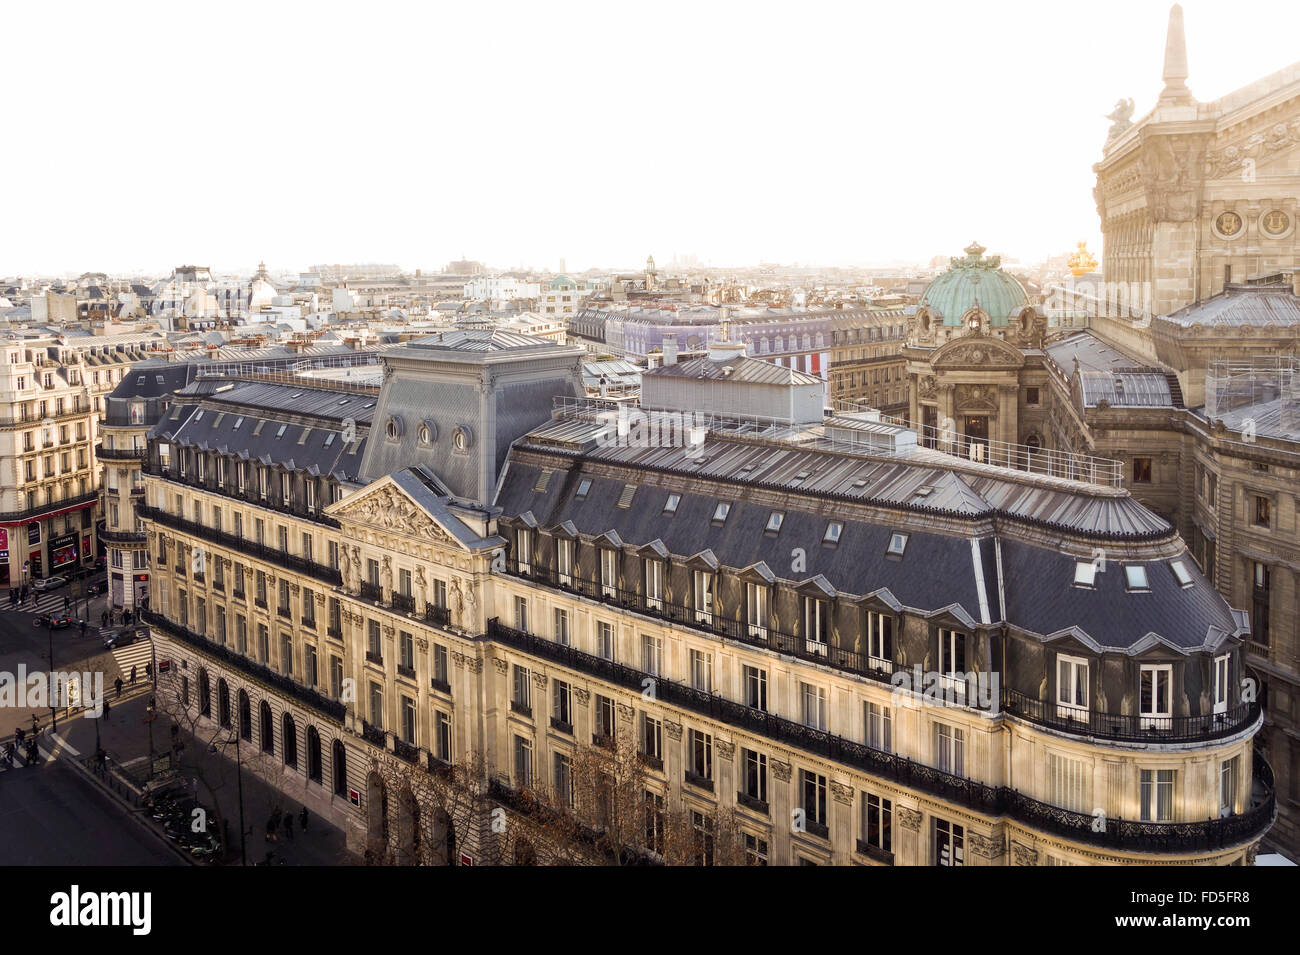 Corporate Office Building Bank Societe generale from roof terrace Galleries Lafayette, Paris, France. - Stock Image